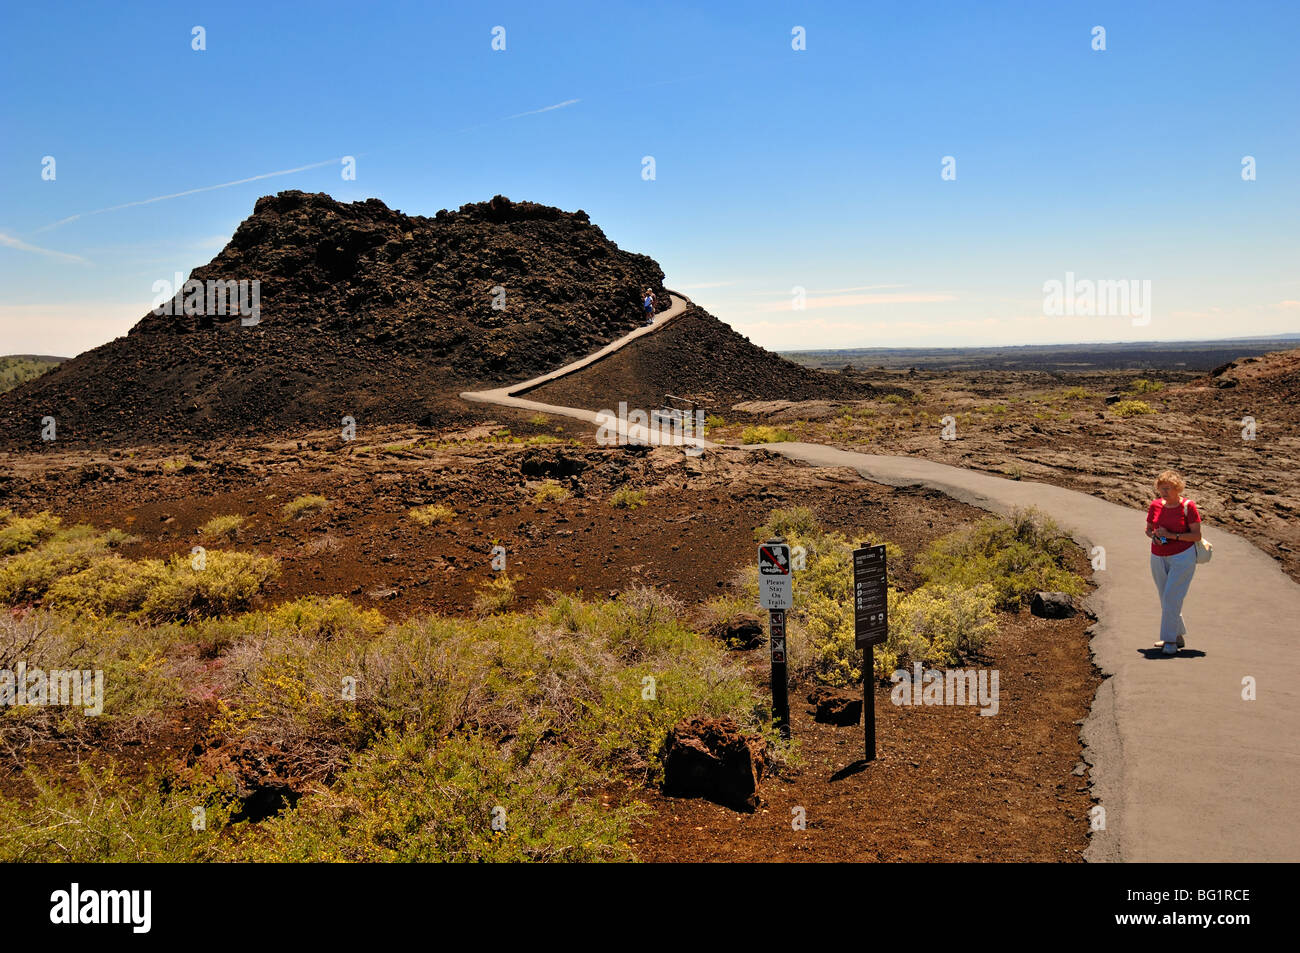 Visitor at Craters of the Moon National Monument, Idaho, USA. - Stock Image